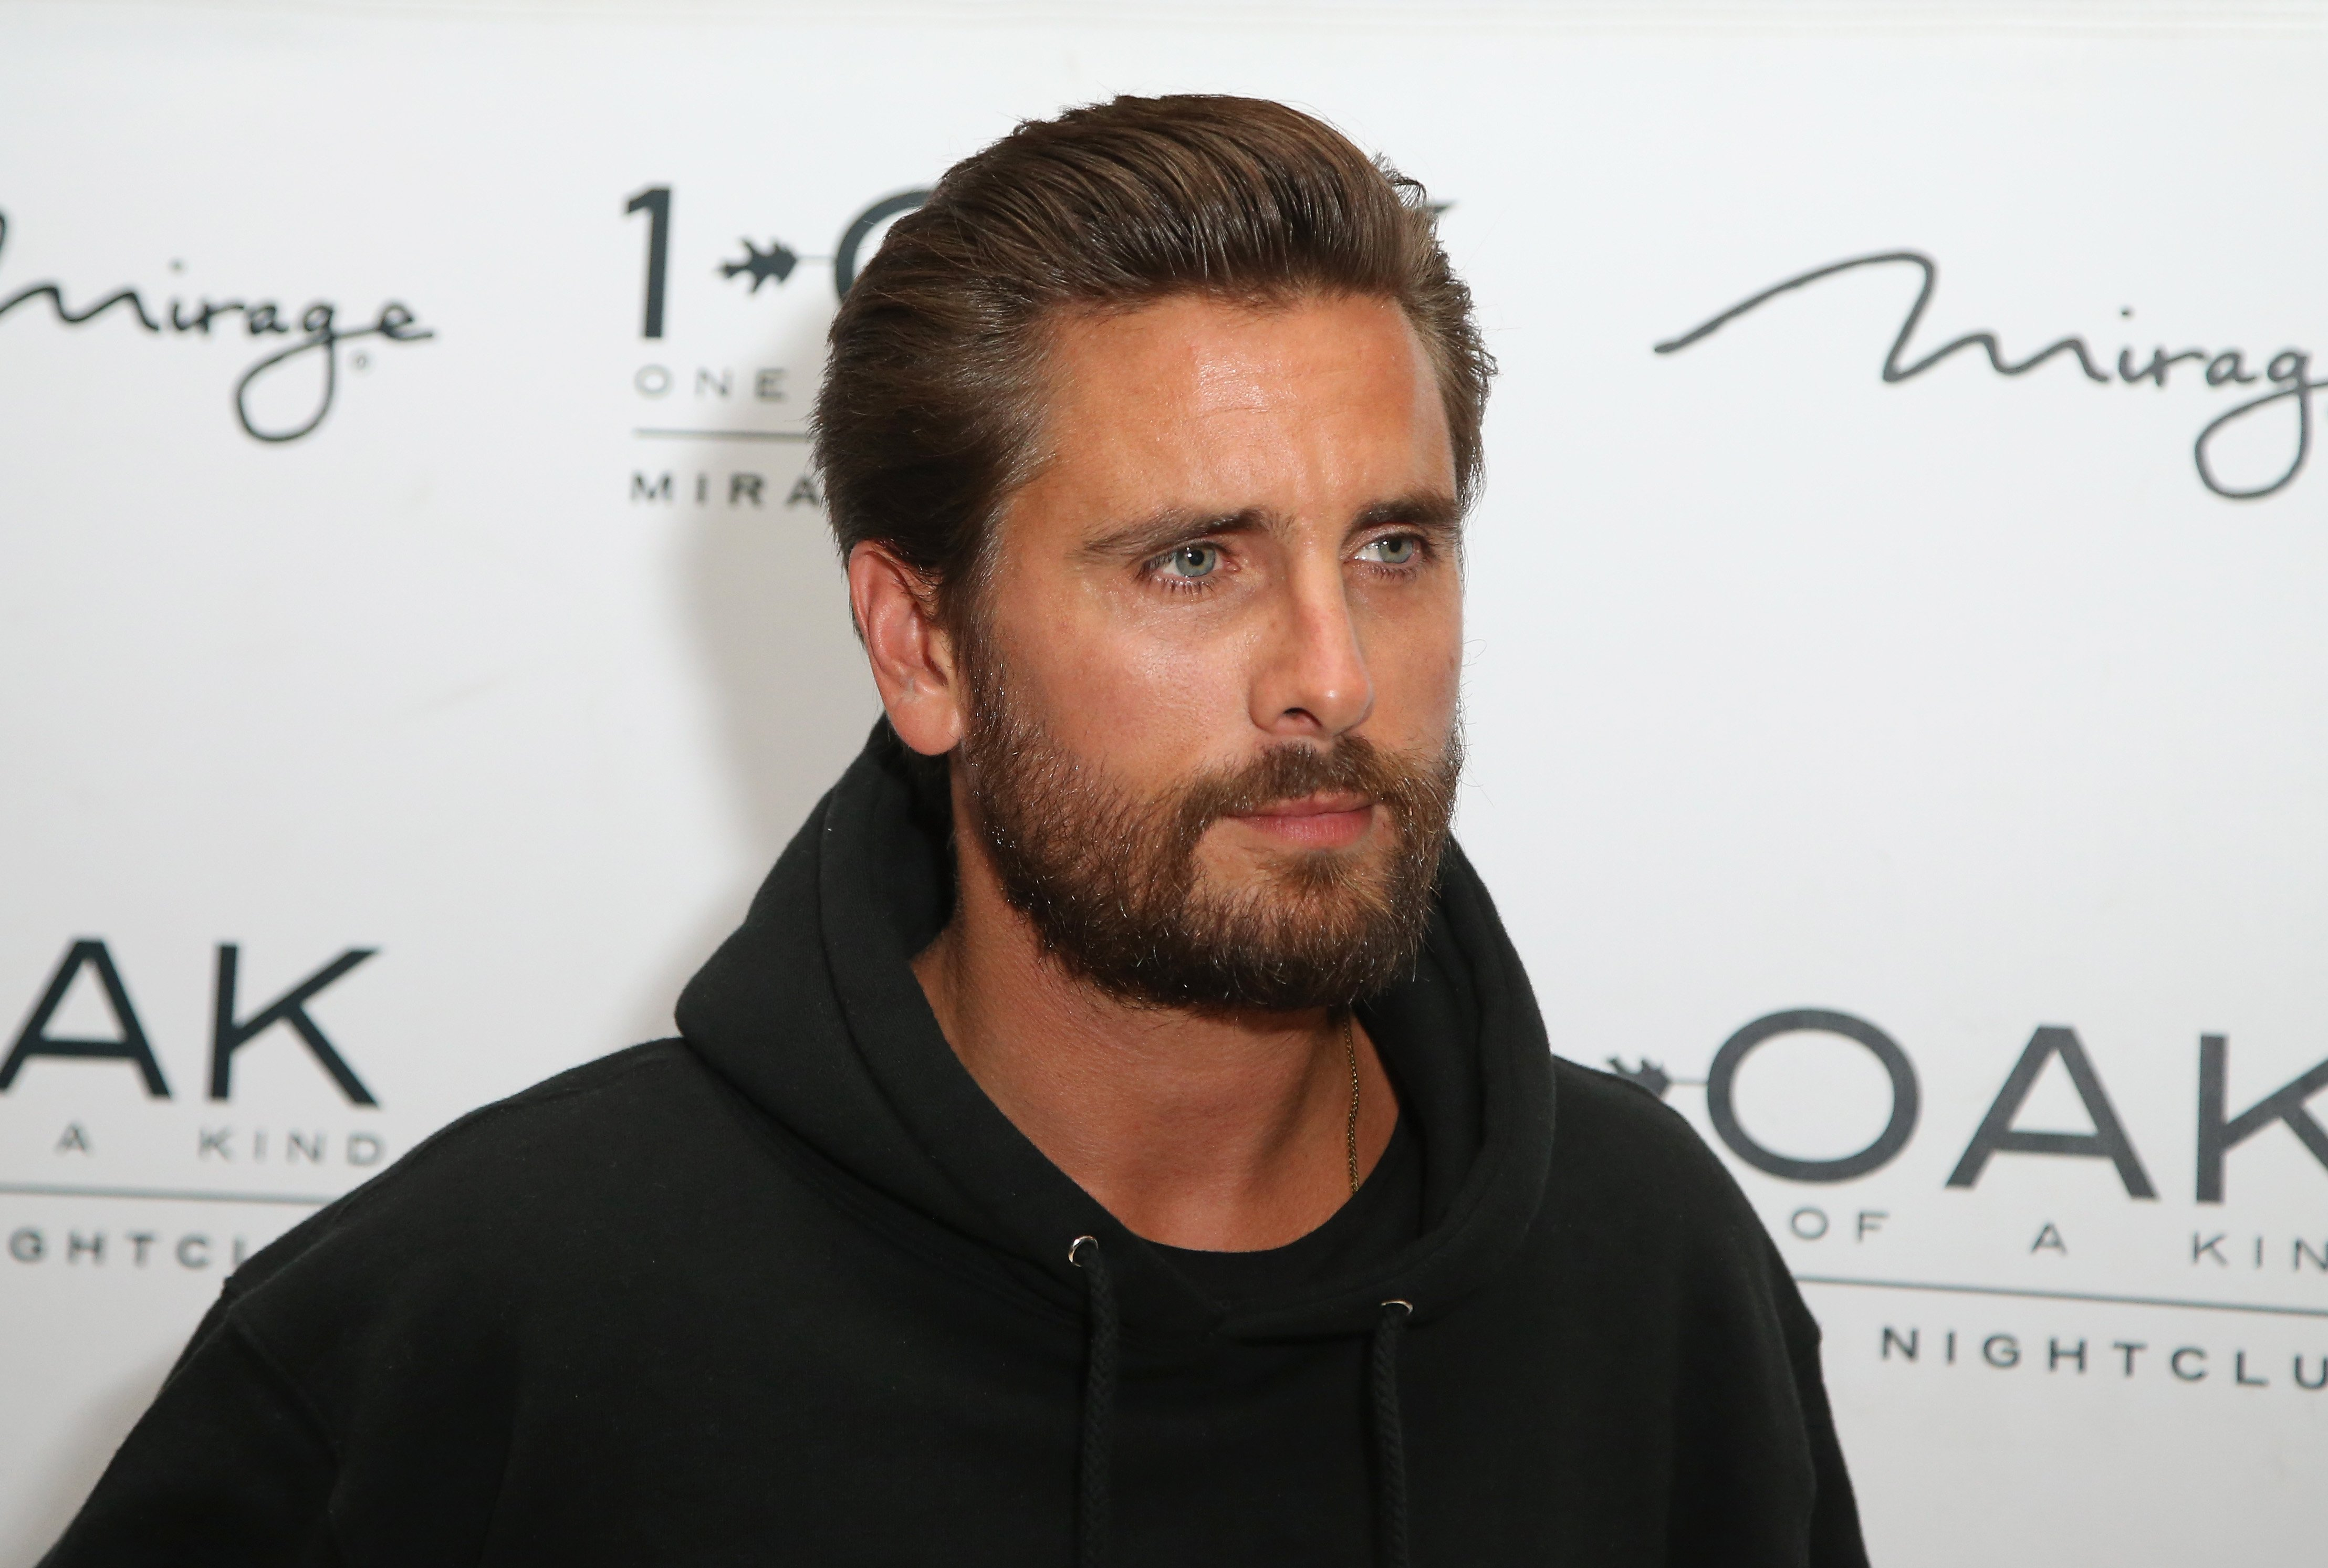 Scott Disick arrives at 1 OAK Nightclub in Las Vegas, Nevada on August 13, 2016 | Photo: Getty Images